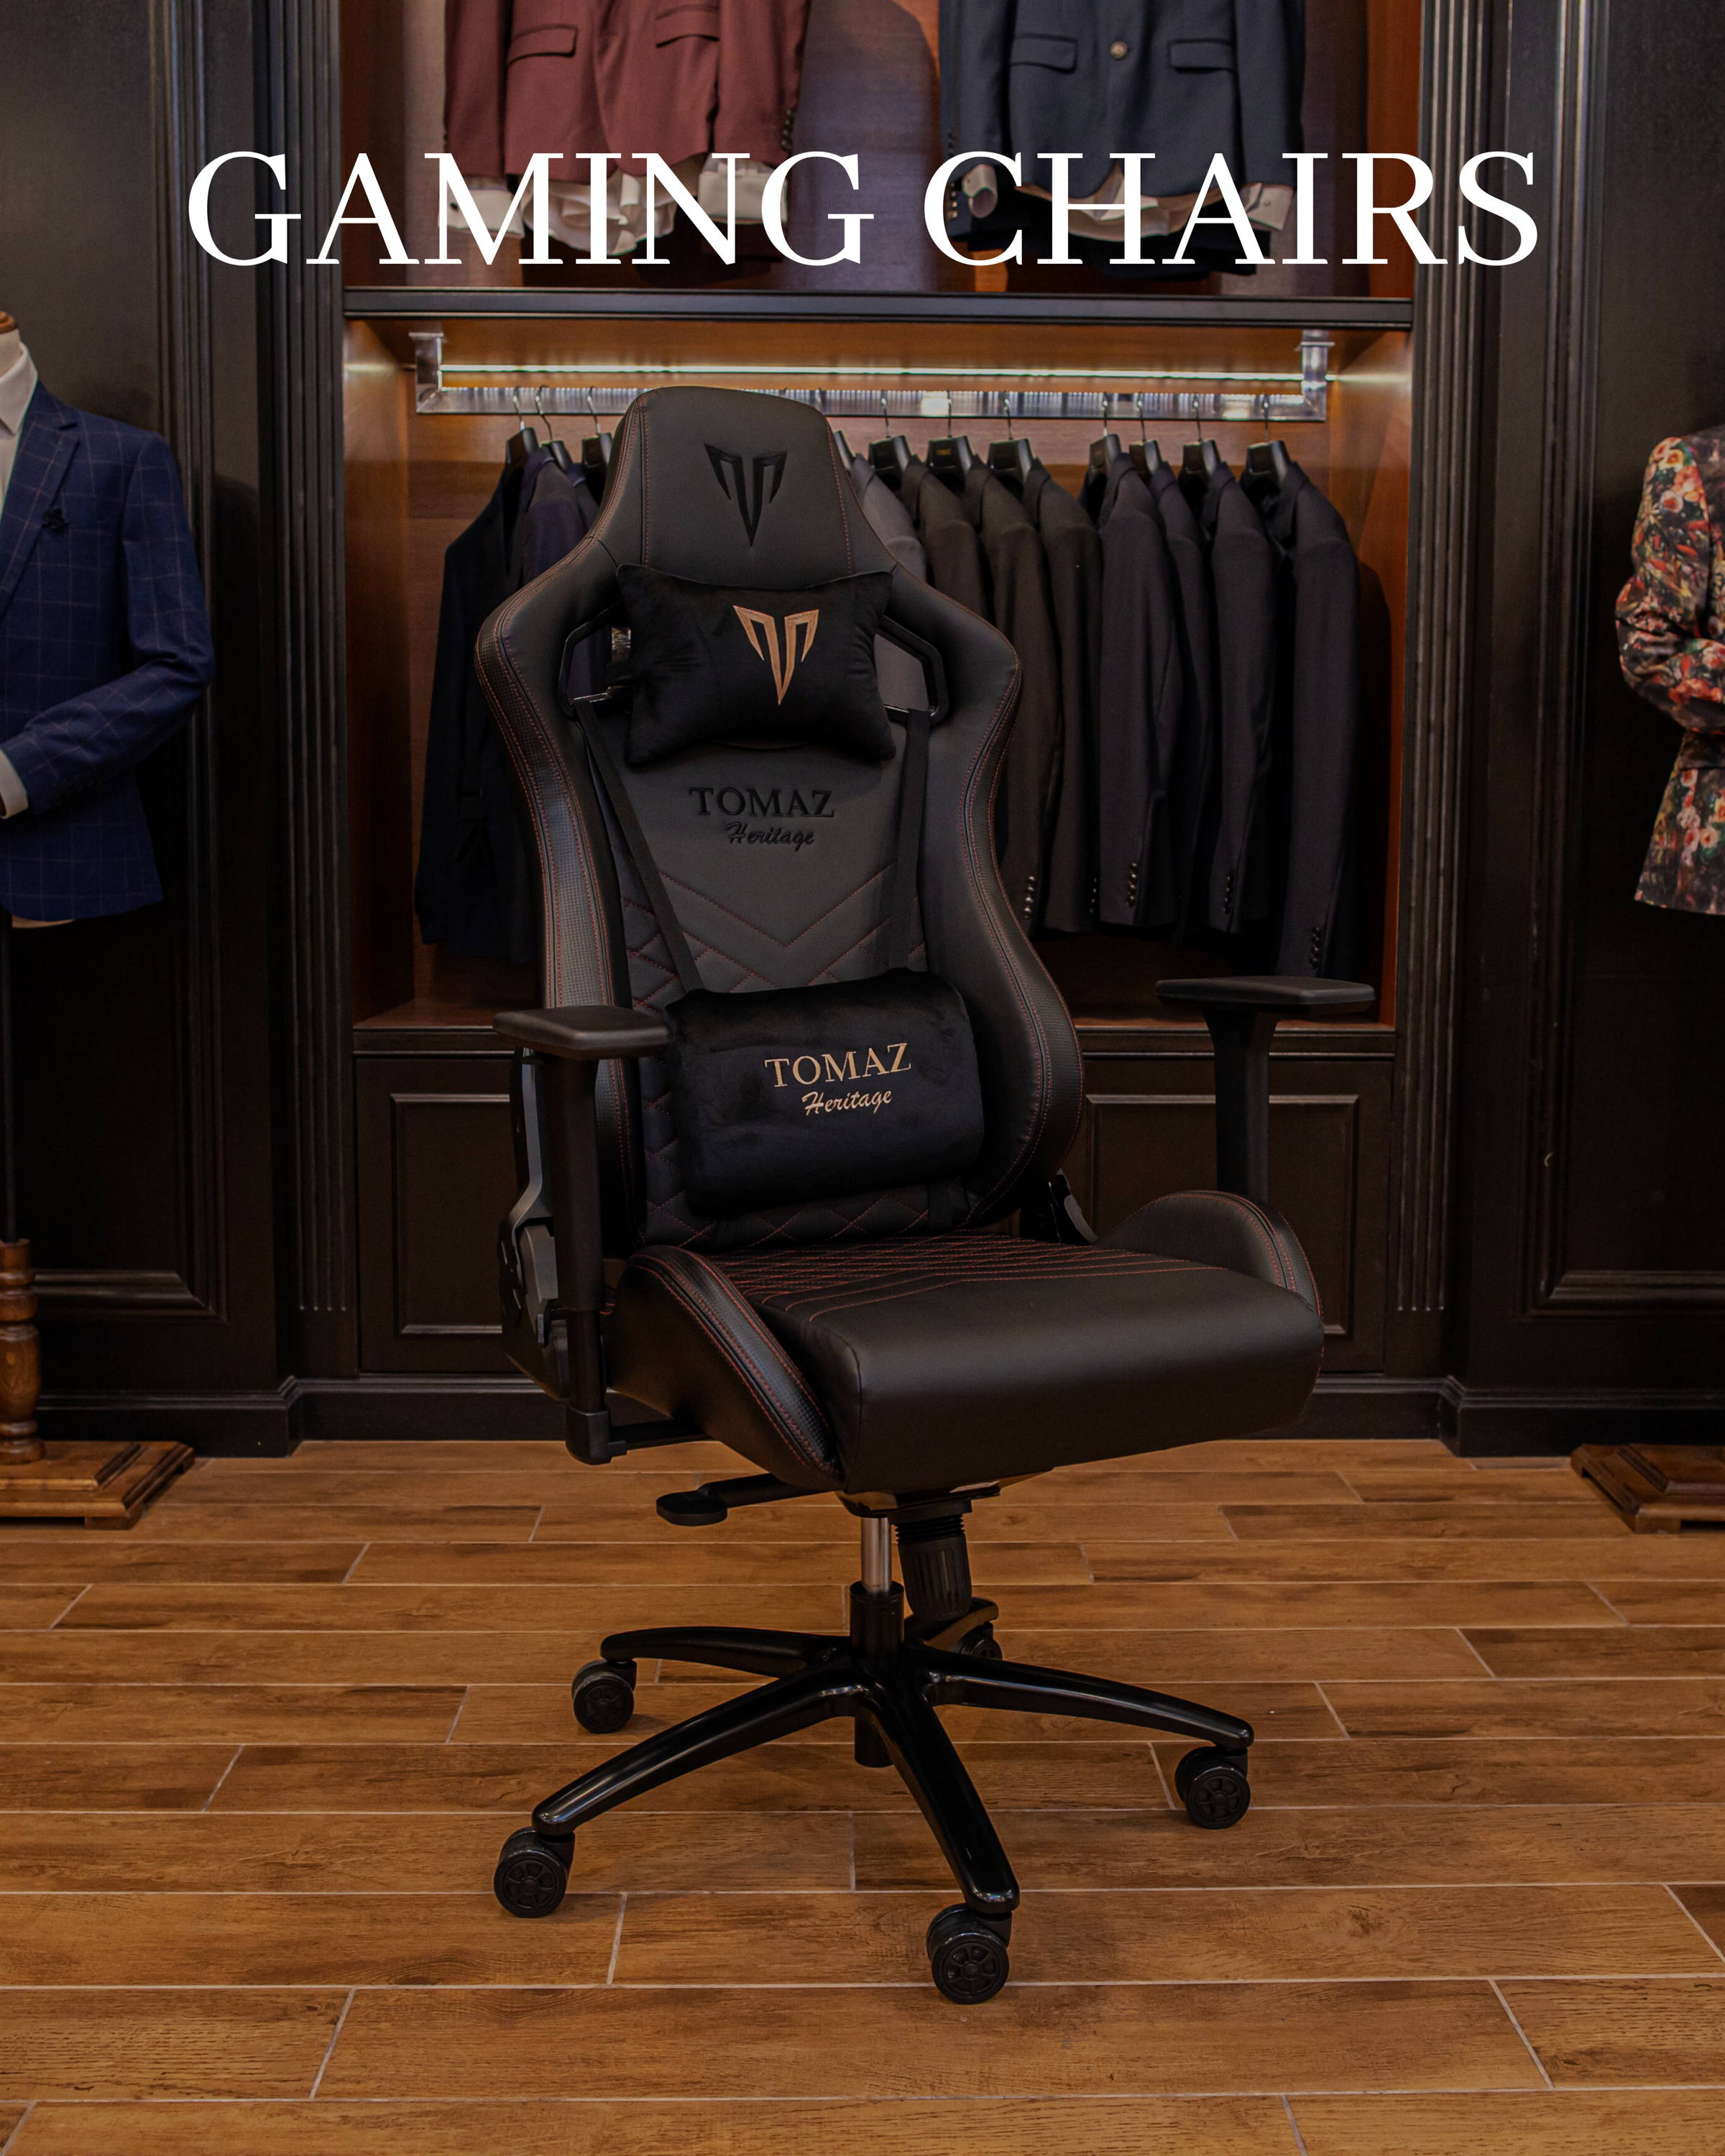 gaming chair gaming chair in malaysia gaming chair best gaming chair malaysia gaming chair budget gaming chair cheap gaming chair price malaysia gaming chair cheap malaysia gaming chair brand gaming chair murah gaming chair price gaming chair kl gaming chair terbaik gaming chair murah terbaik gaming chair top 10 where to buy gaming chair gaming chair features what gaming chair to buy gaming chair online gaming chair 150kg gaming chair 180 degree desk for gaming chair gaming chair with leg rest gaming chair heavy duty gaming chair murah terbaik, gaming table, gaming table pc, gaming table computer, gaming table Malaysia, gaming table kuala lumpur, gaming table Selangor, gaming table johor, gaming table kedah, gaming table Pahang, gaming table Sarawak, gaming table sabah, gaming table Melaka, gaming table Kelantan, gaming table perlis, gaming table perak, gaming table Terengganu, gaming table design, gaming table cheap, gaming table cup holder, gaming table kickstarter, head to head gaming table, gaming table black gaming table 2020, gaming table online, gaming table set gaming table near me, Gaming tables for sale near me, Computer gaming tables for sale, Video gaming tables for sale, Best gaming table cheap, Best gaming table for pc, Gaming table pc buy, Pc gaming table for sale, Video gaming table.